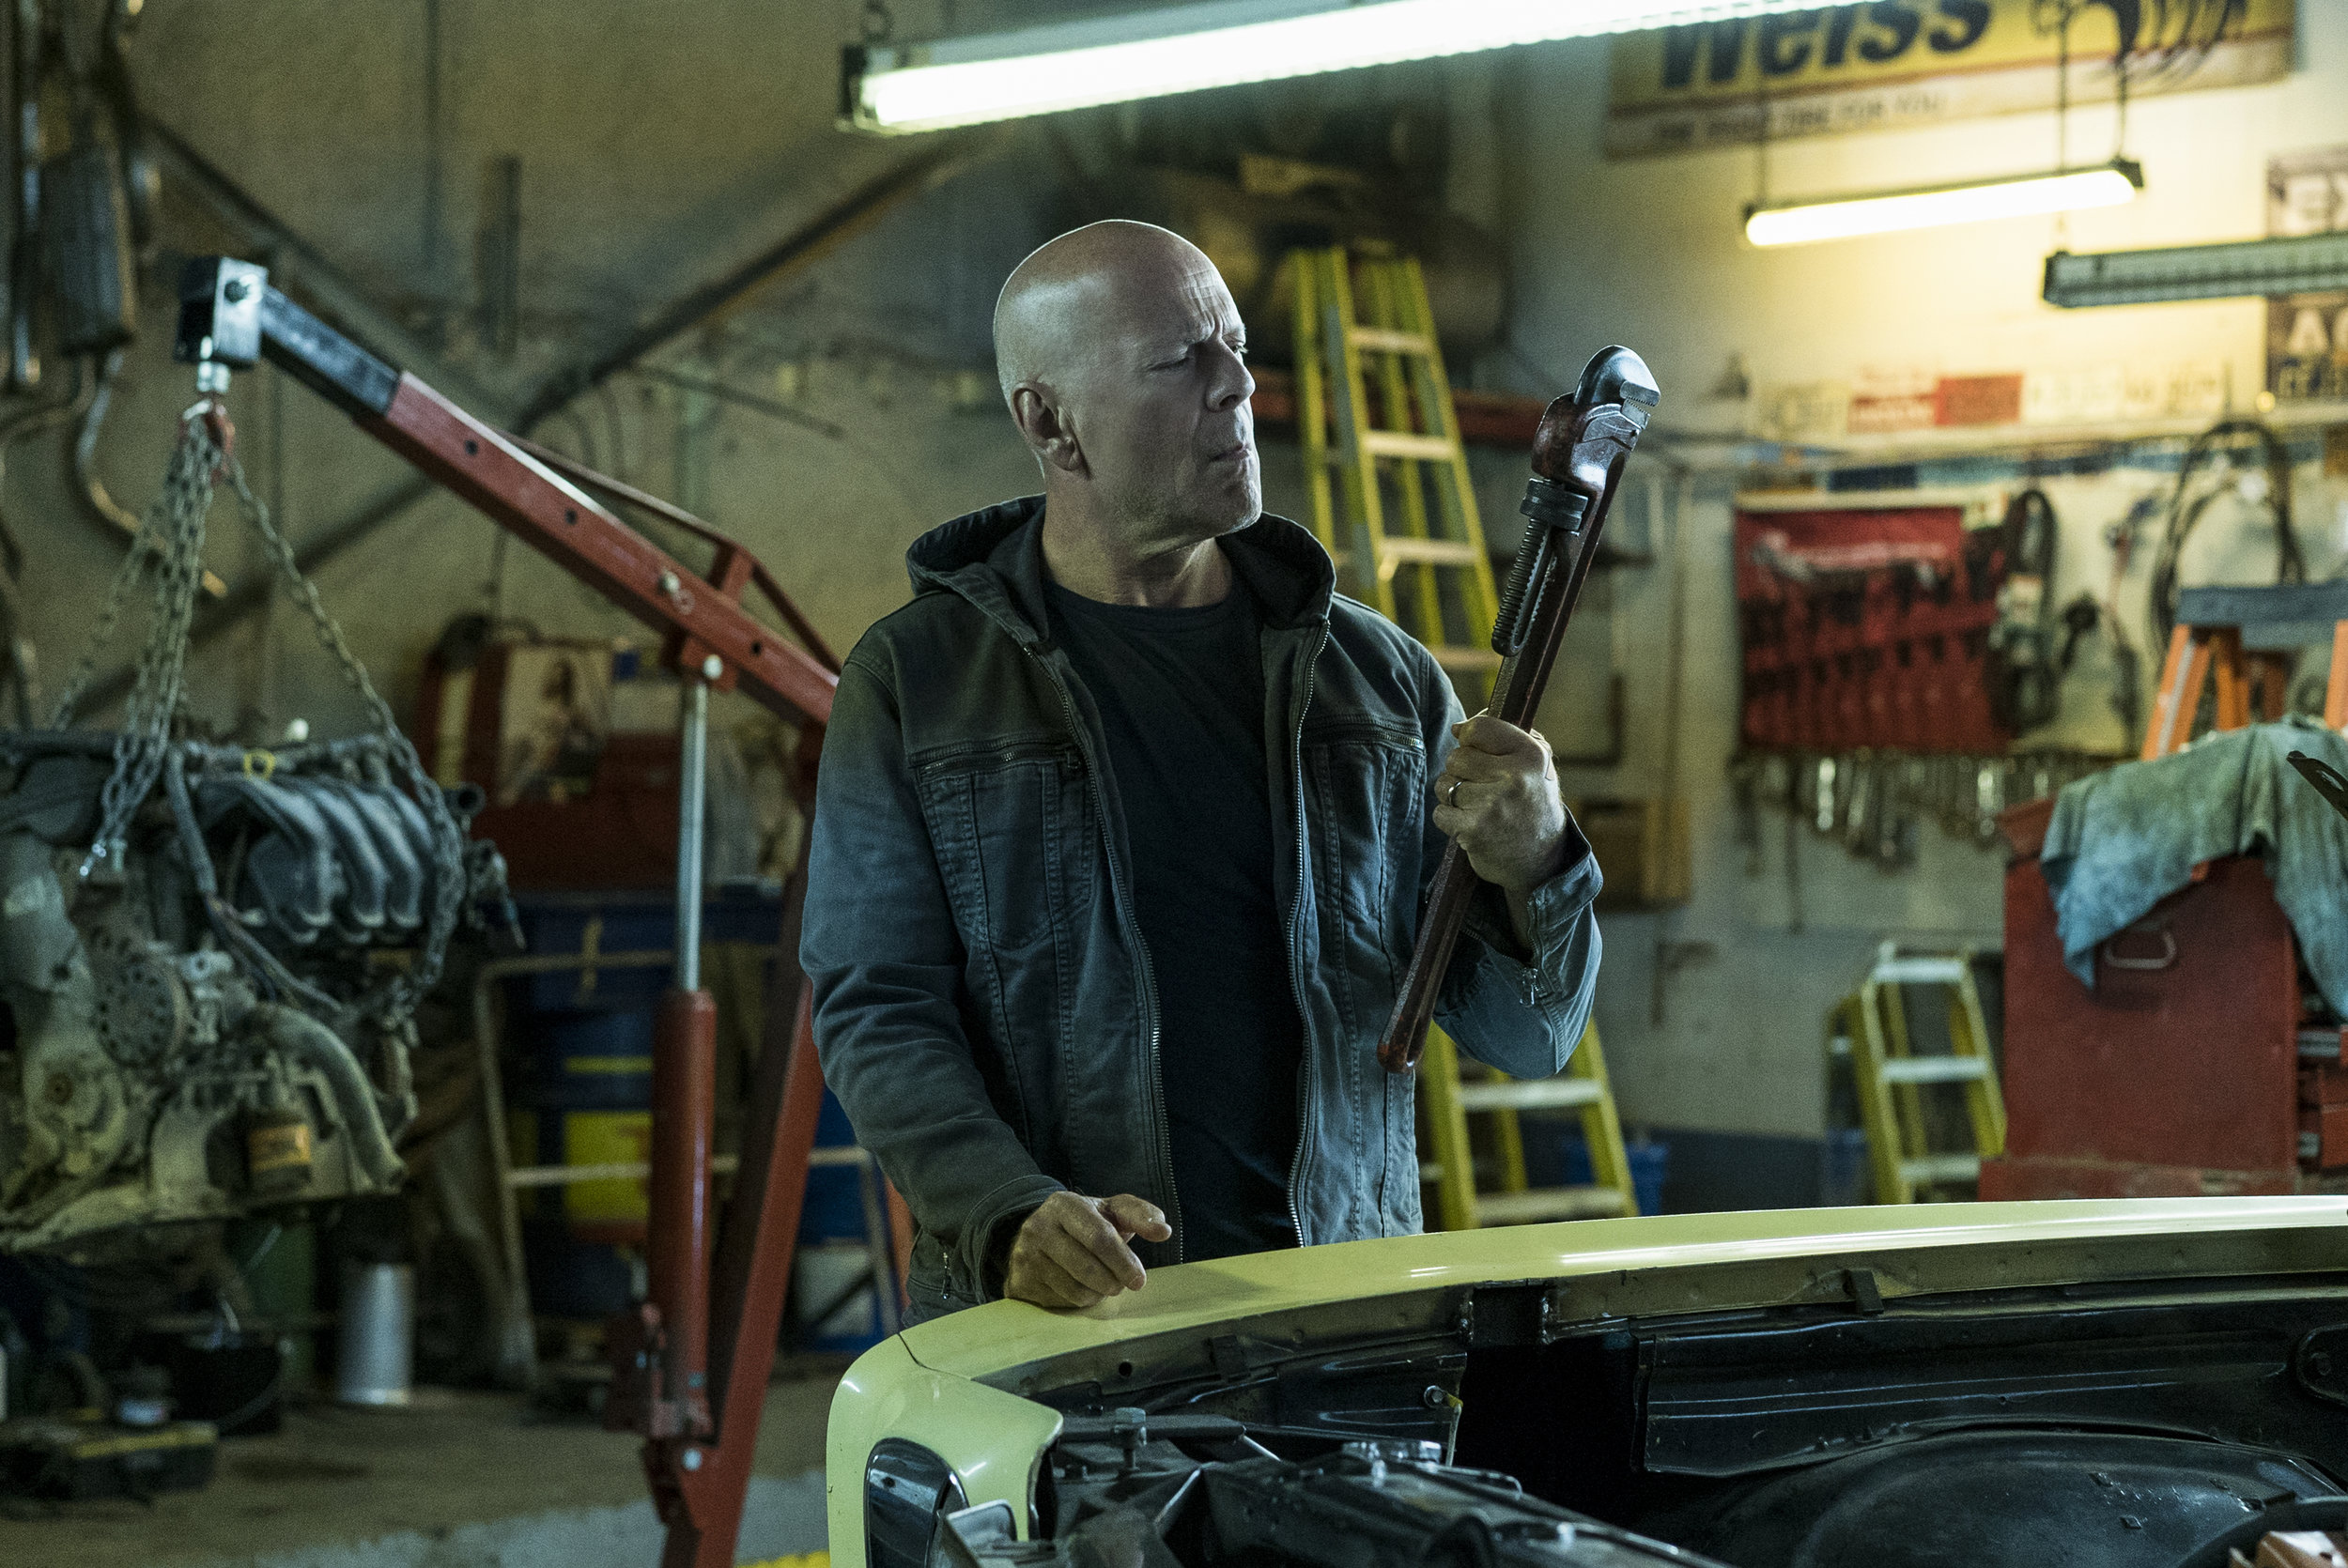 Bruce Willis in Death Wish reboot: Revenge is a dish best served with a blunt, heavy object